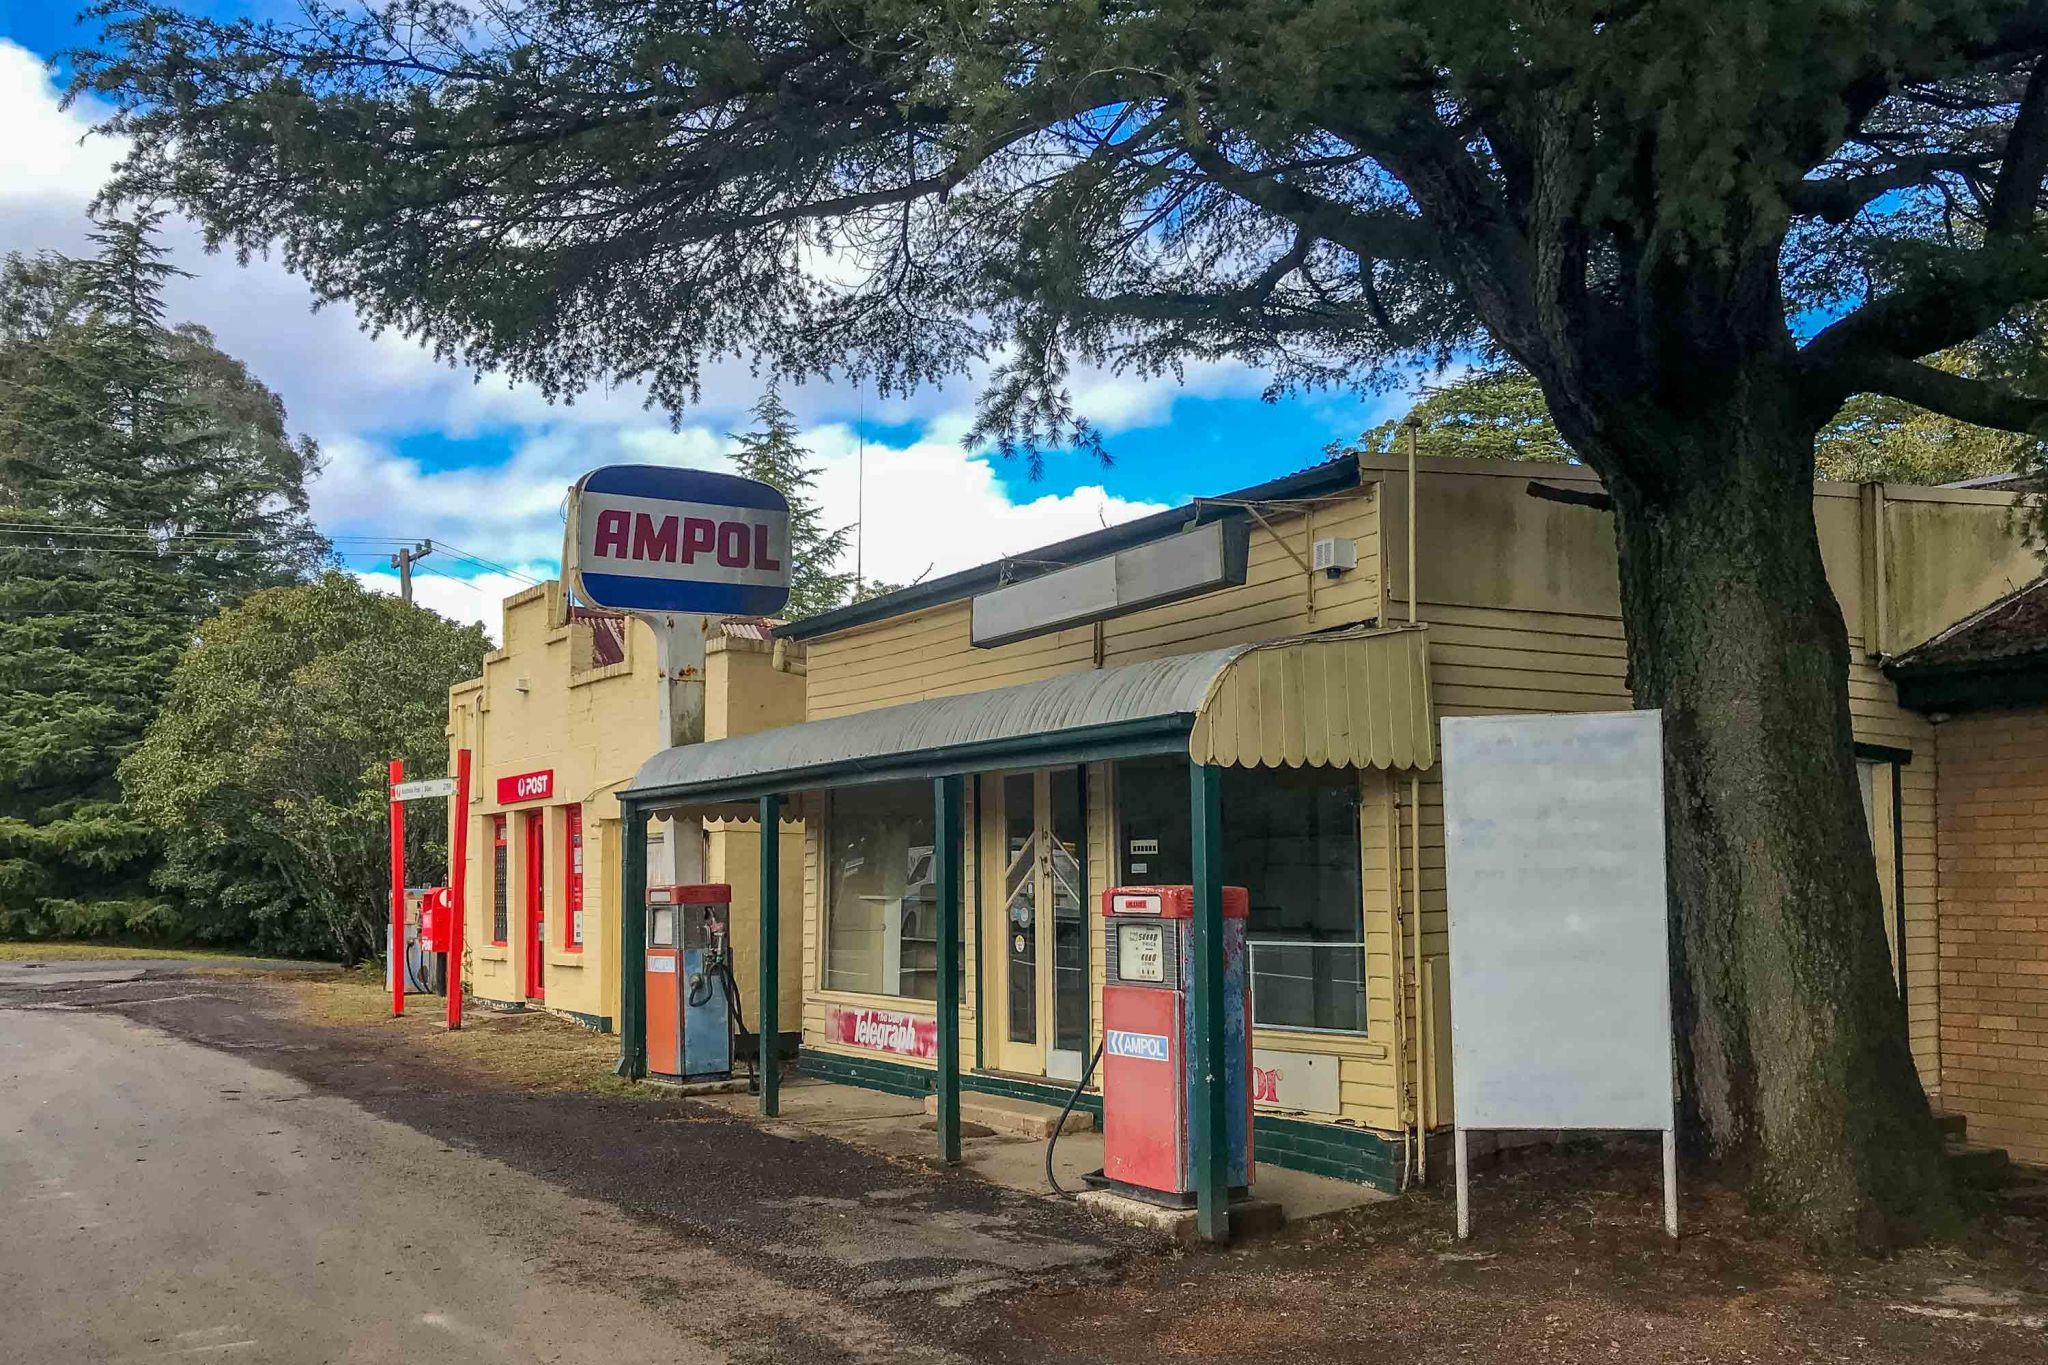 Bilpin Post off and Ampol Service station New South Wales, Australia